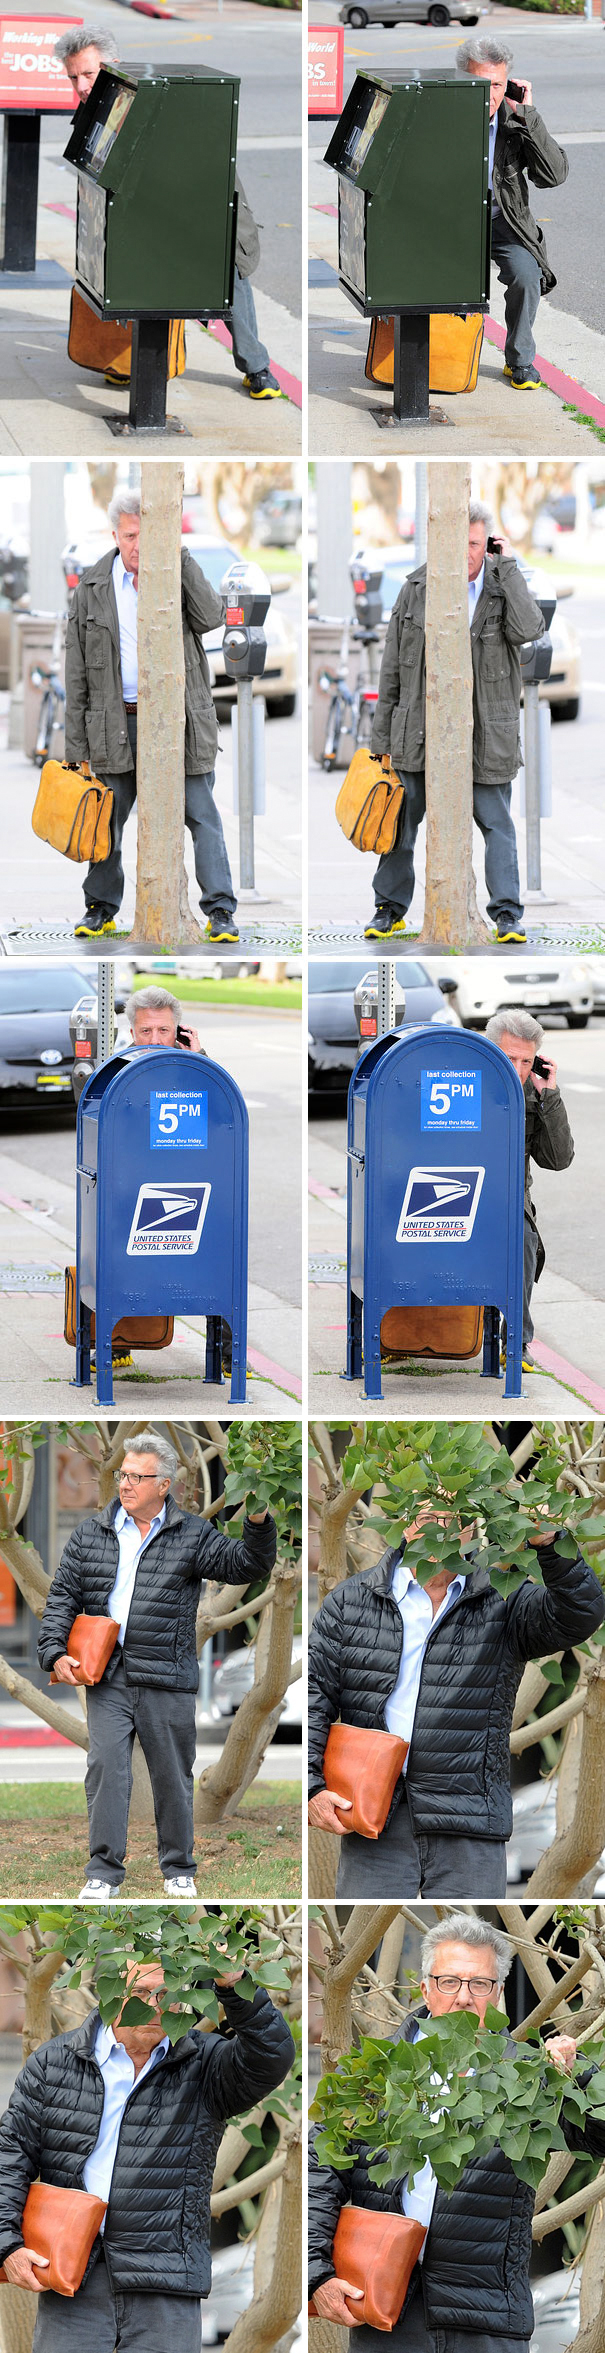 funny-celebrity-reactions-to-paparazzi-02